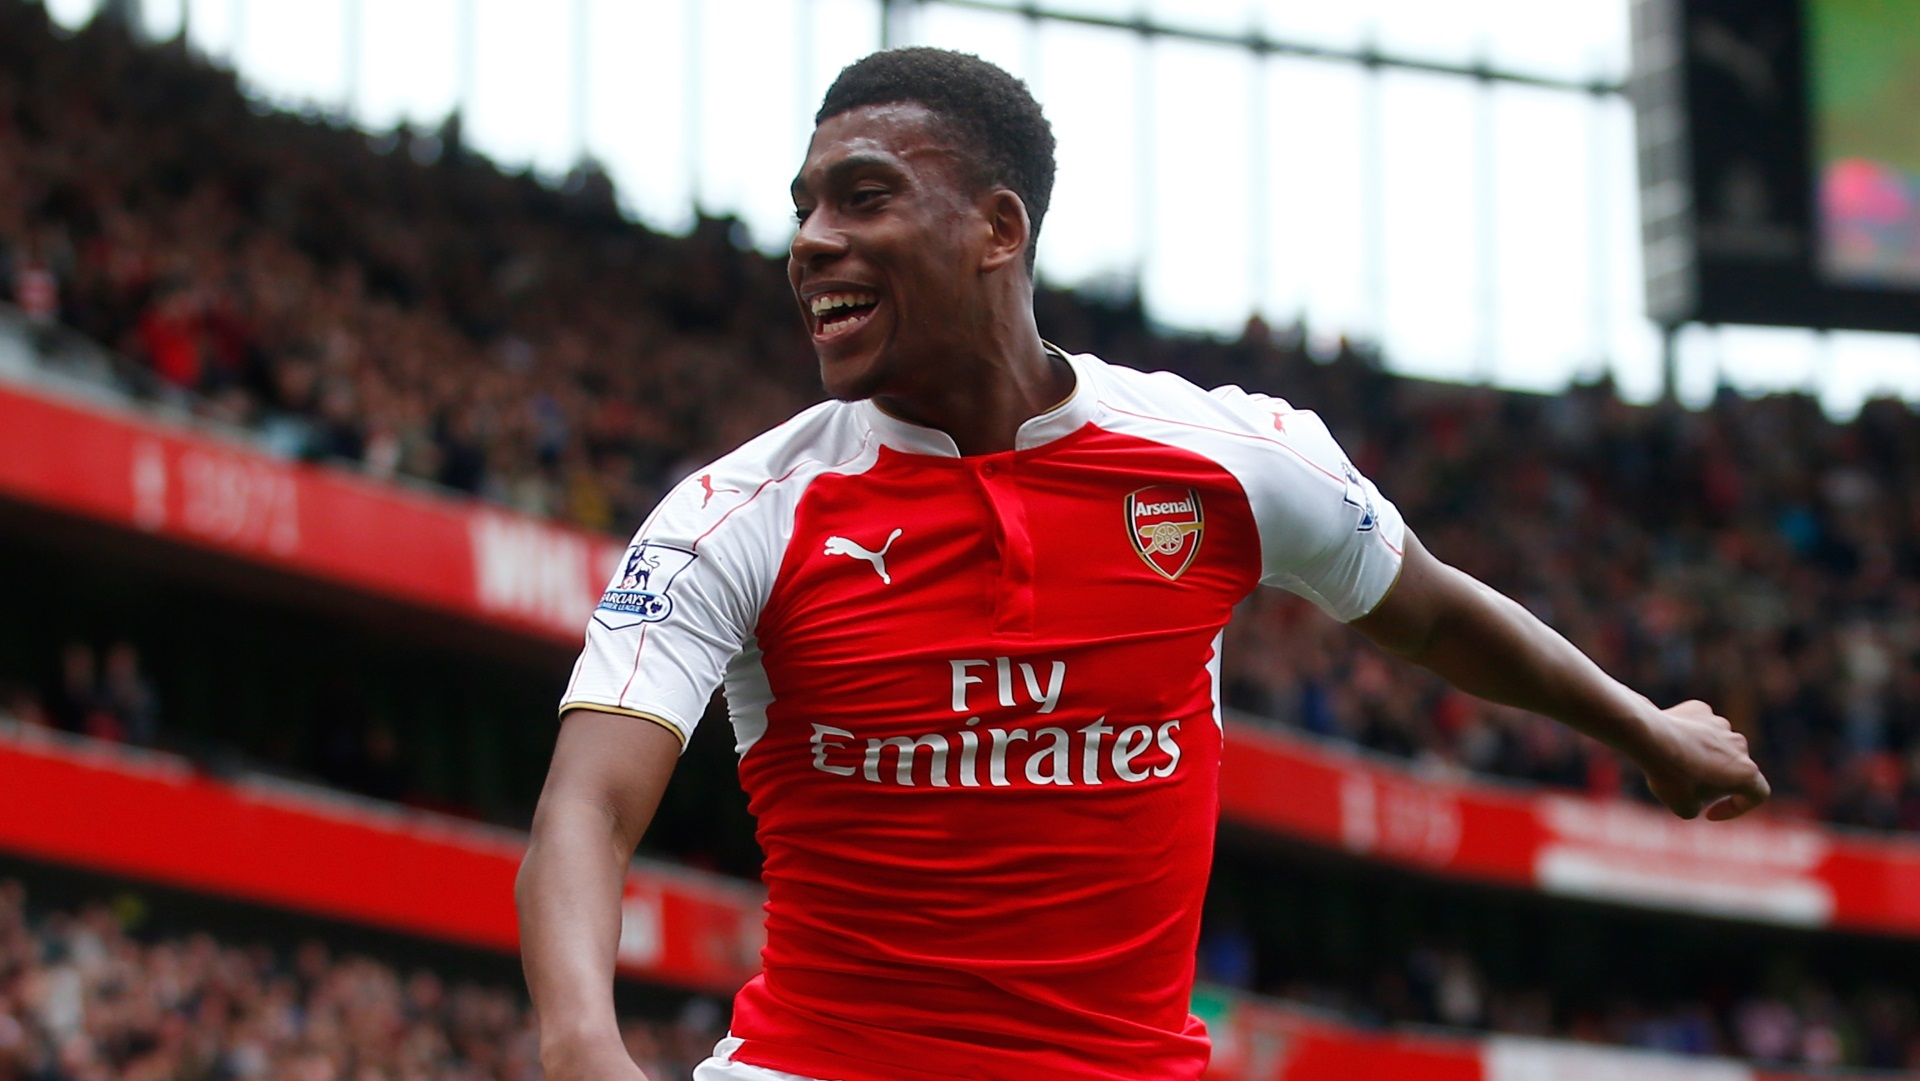 Arsenal plans to block Alex Iwobi from playing in Olympics ...